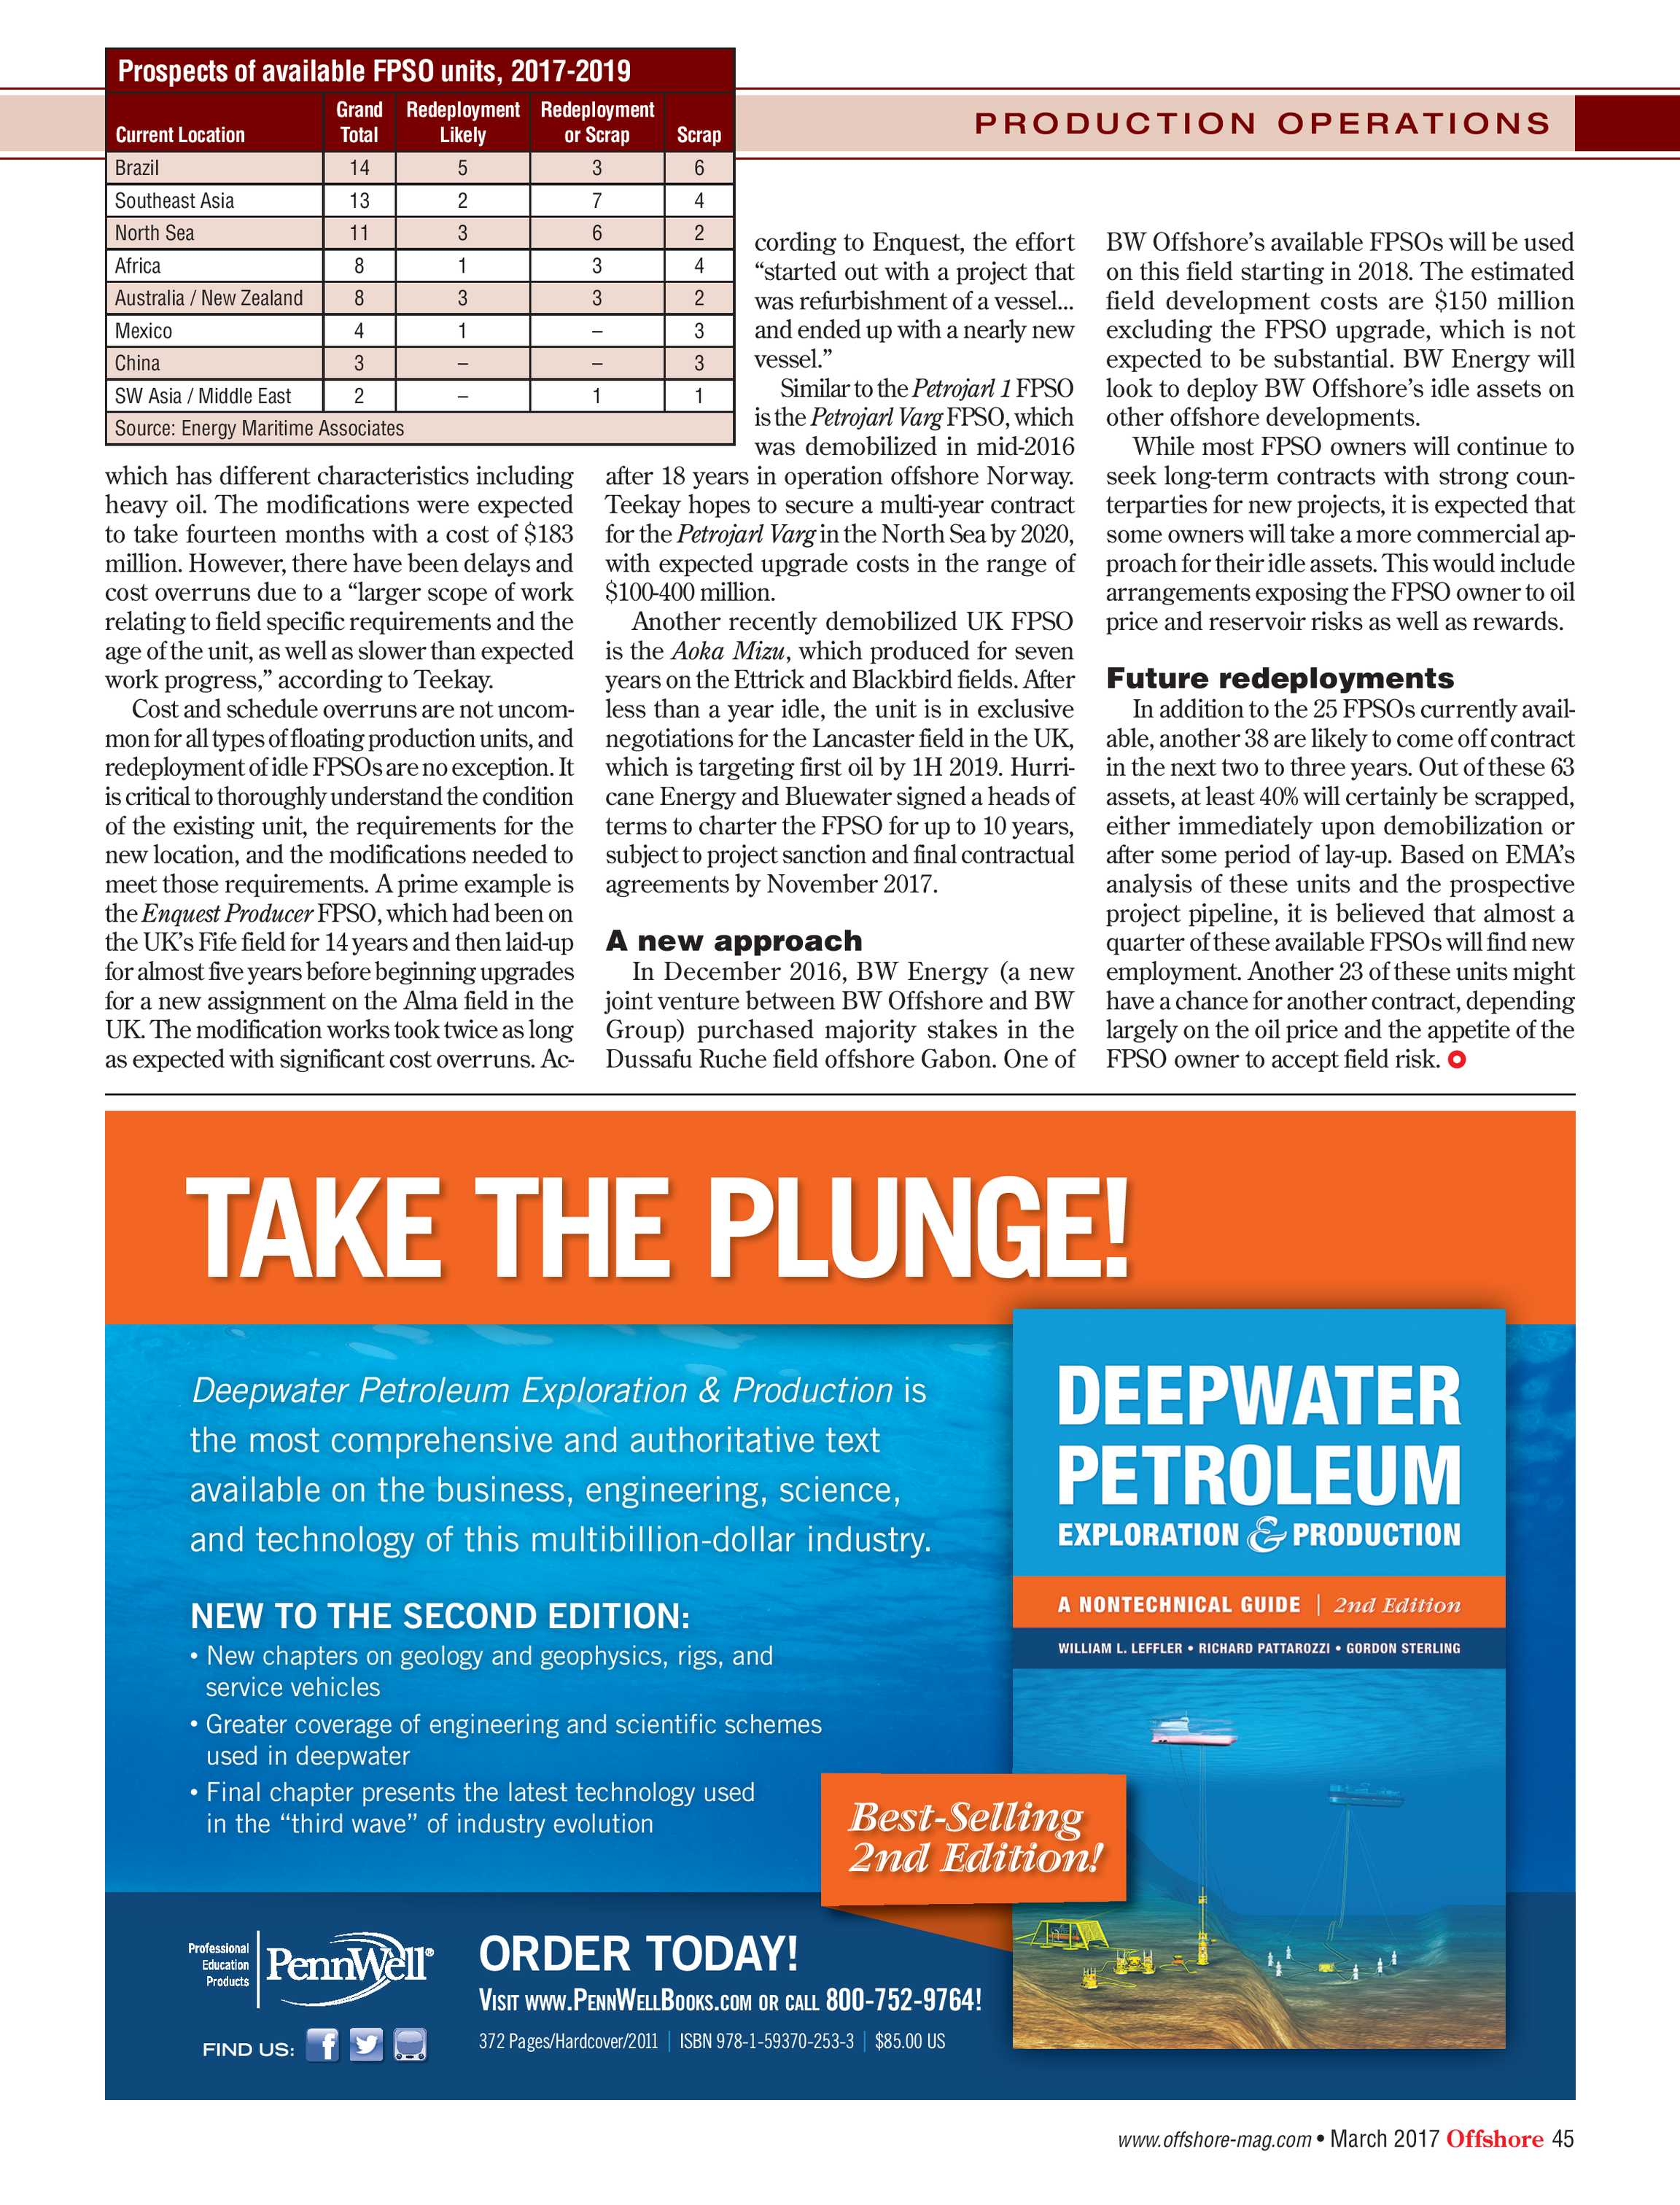 Offshore Magazine - March 2017 - page 45